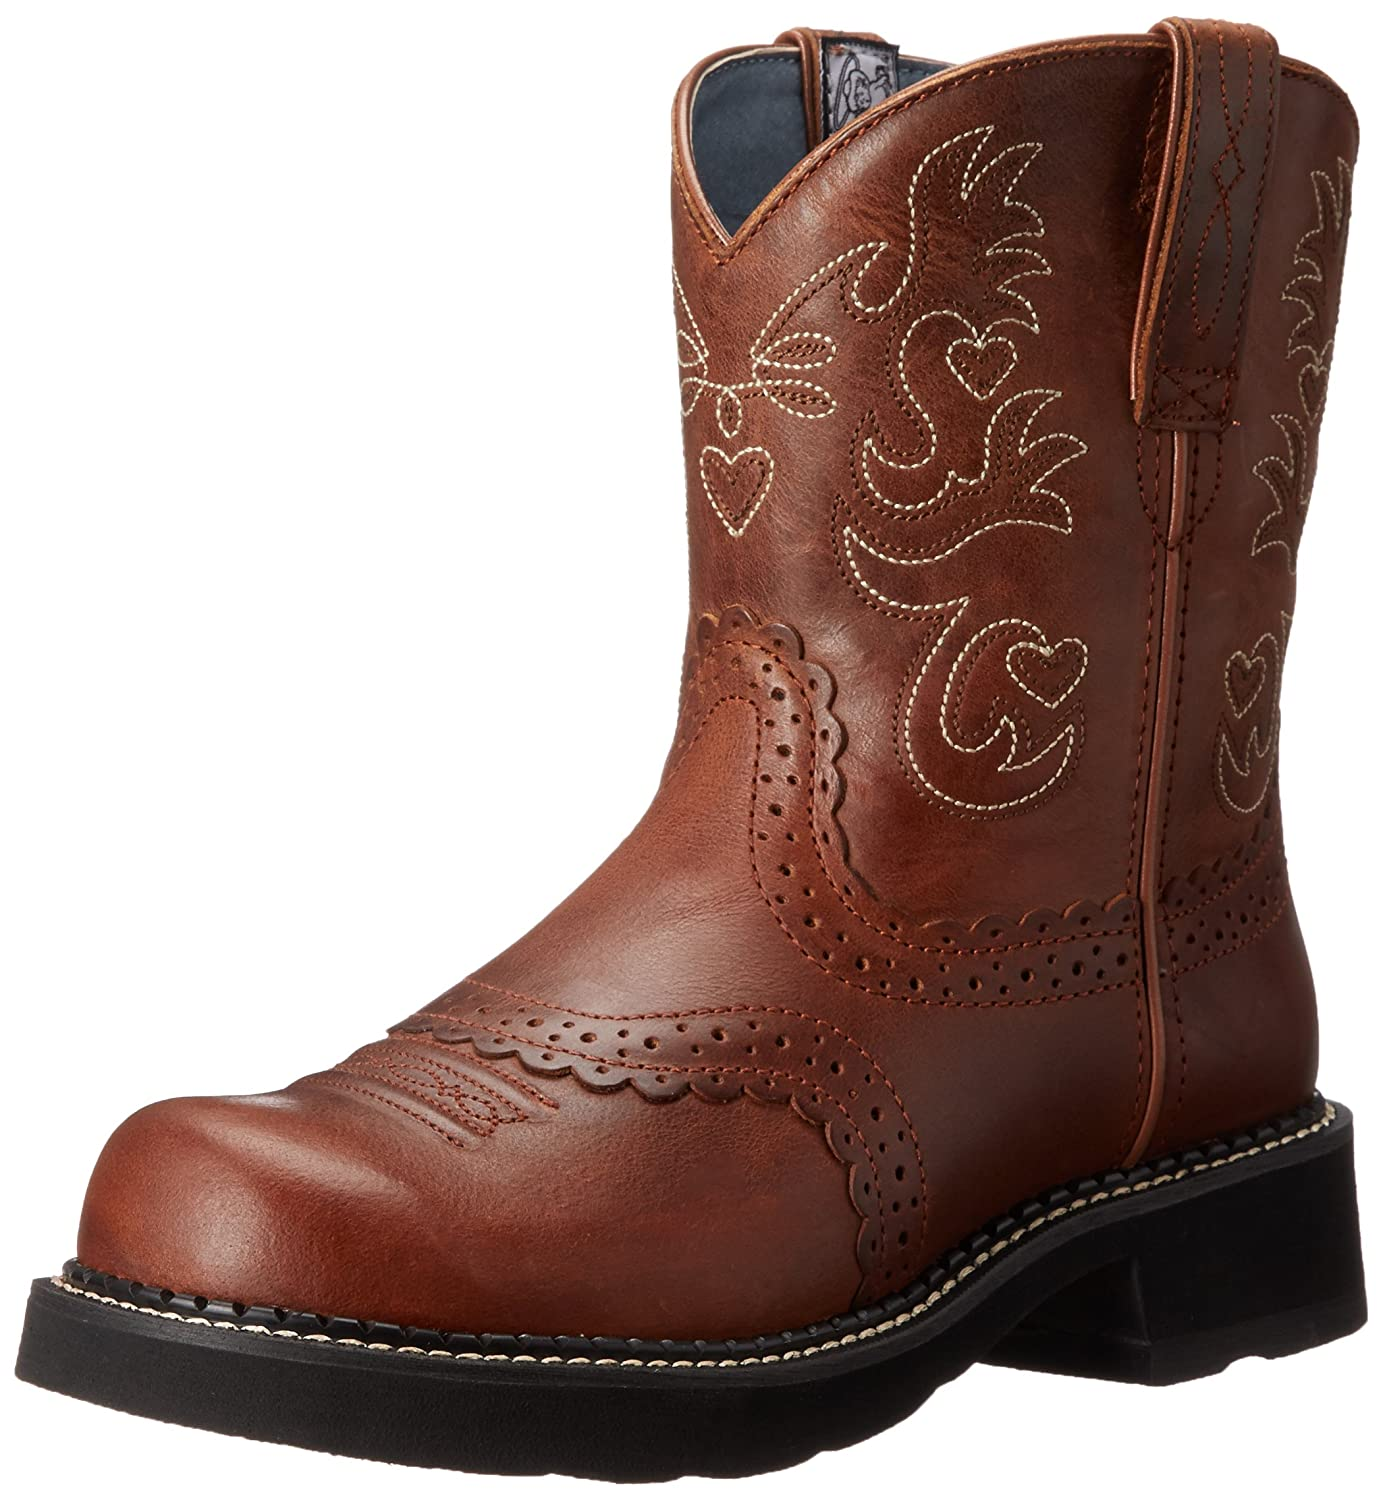 Ariat レディース Shasta H2O B01NAYOA1U 5.5 B(M) US|Baked Brown Baked Brown 5.5 B(M) US